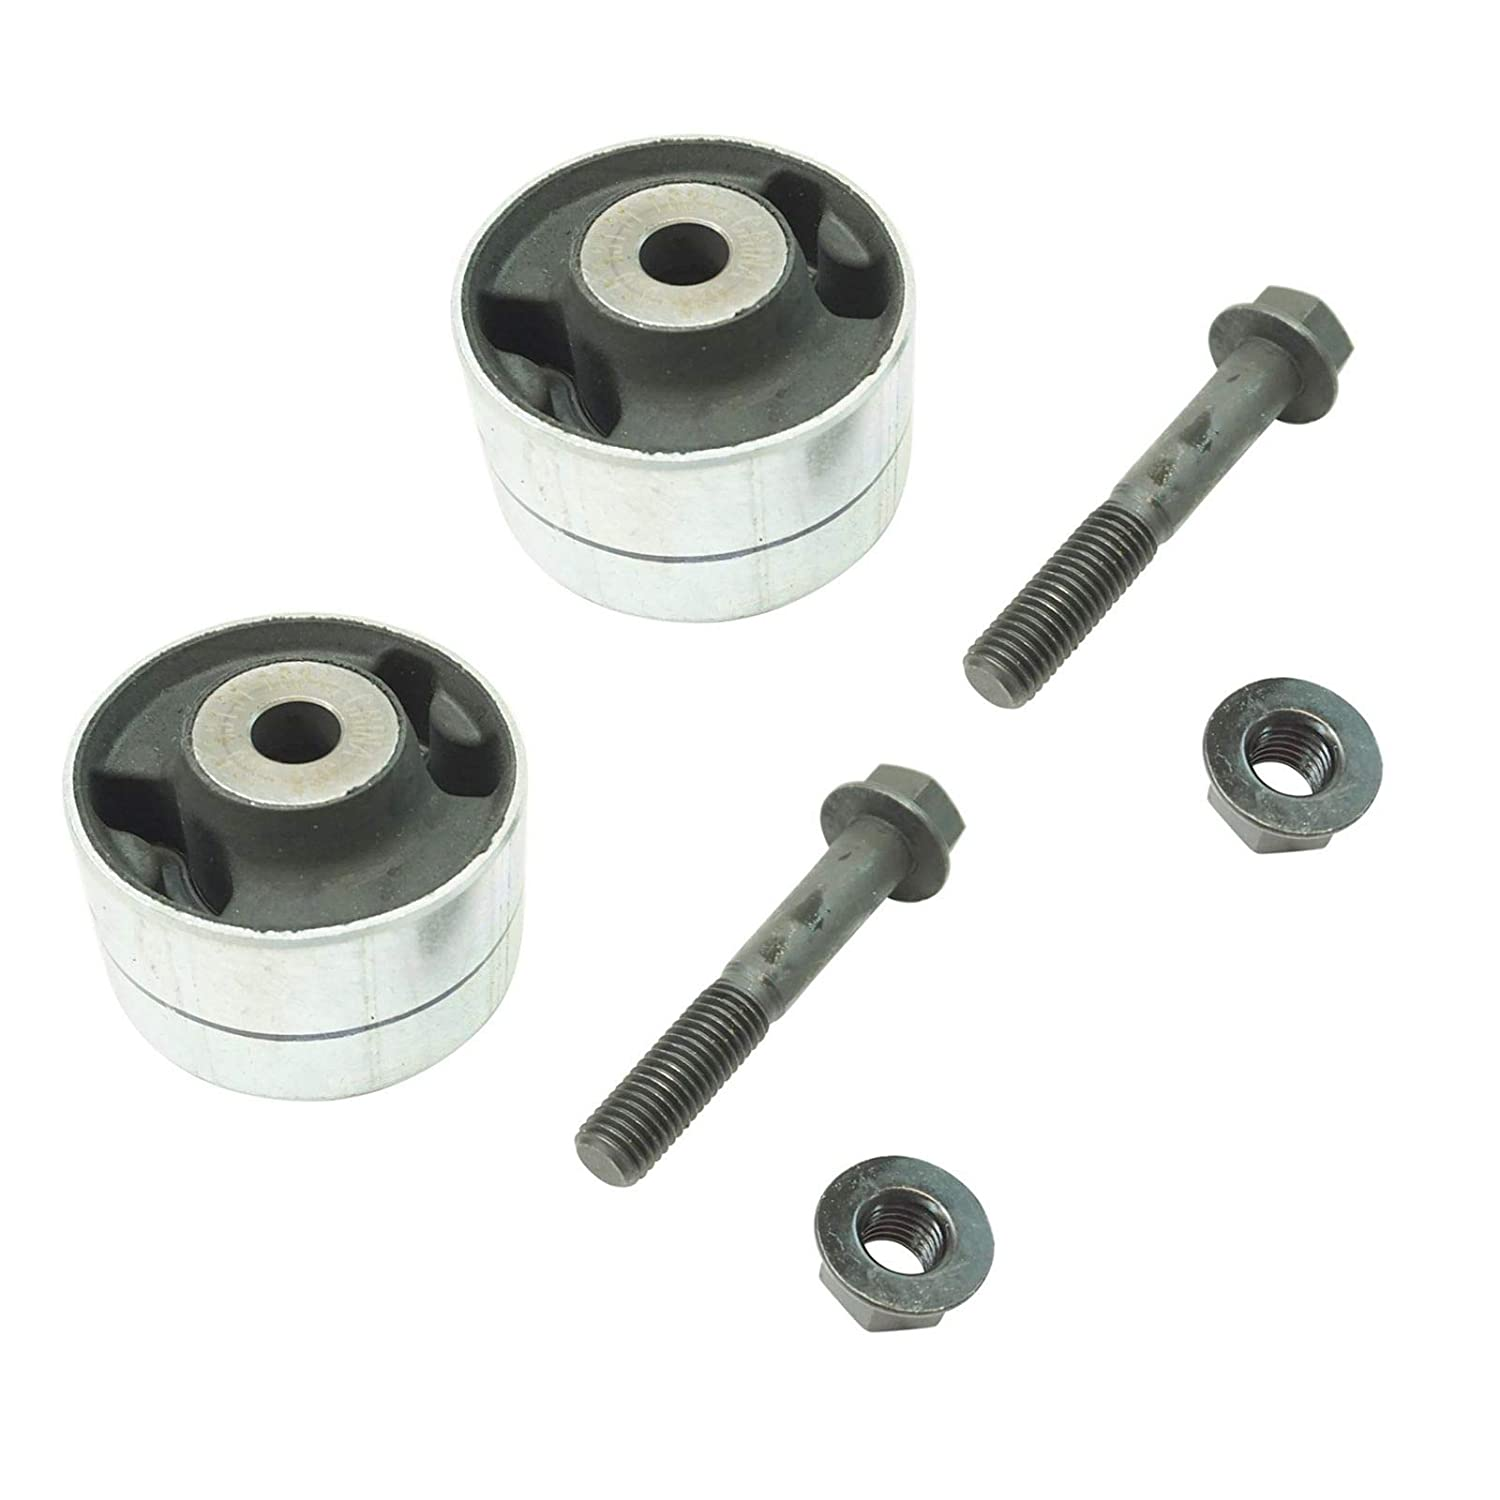 Rear Lower Trailing Arm Bushing w/Bolt & Nut LH RH Pair for Equinox Torrent Vue AM Autoparts